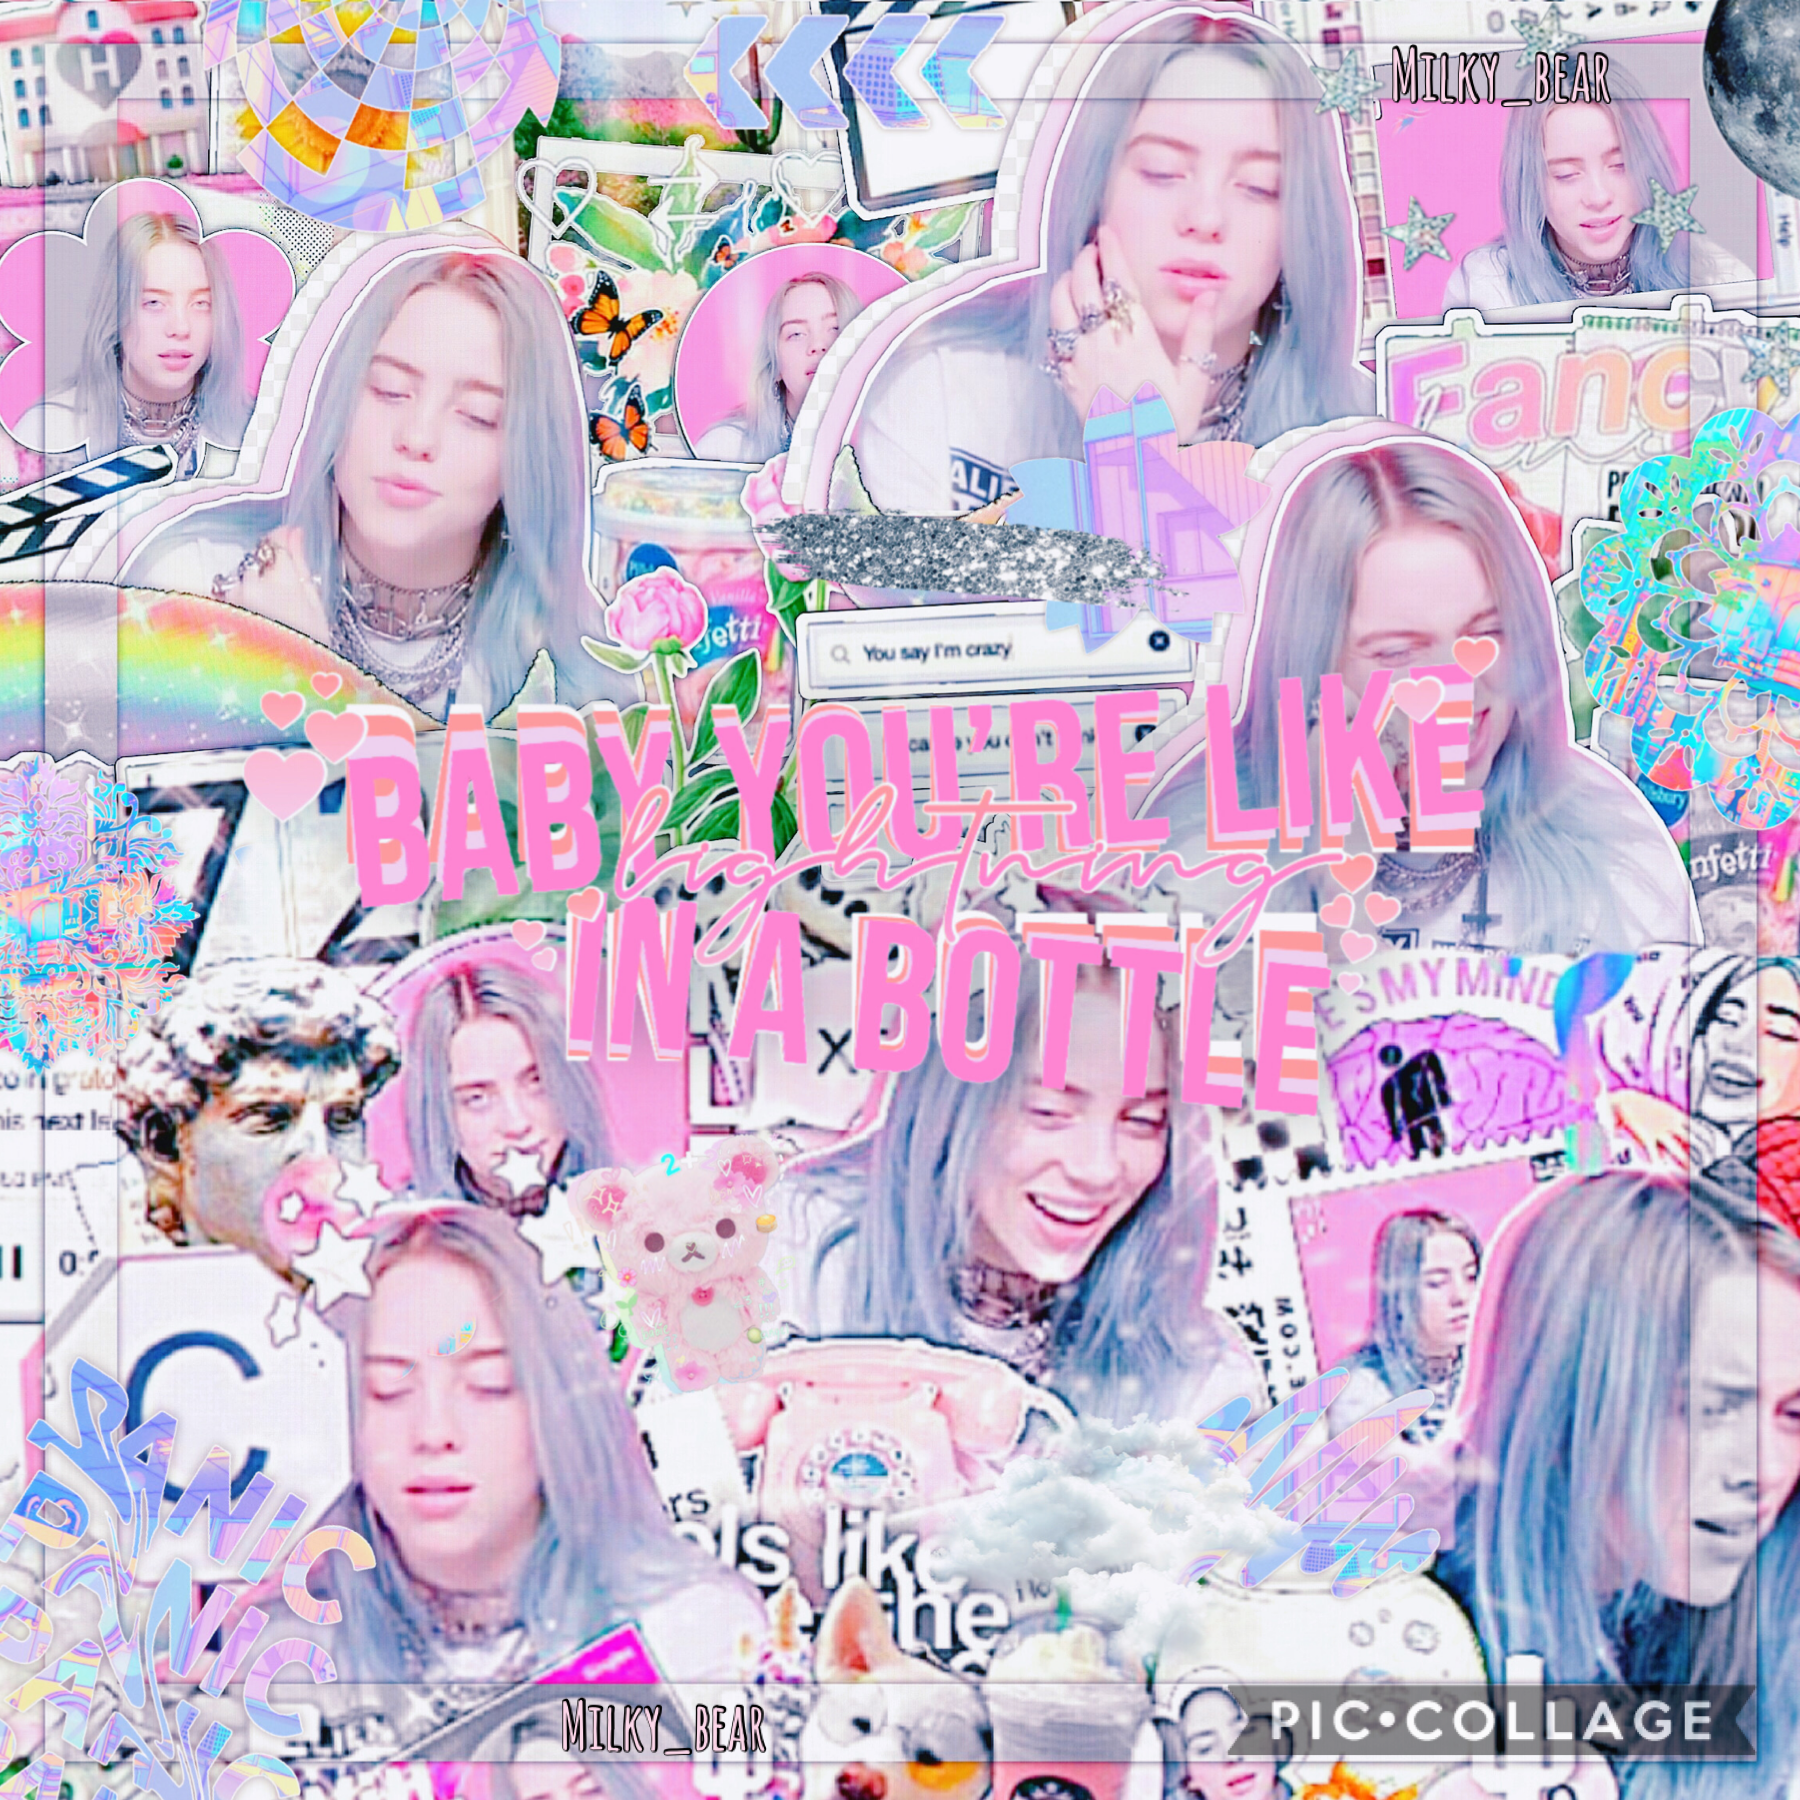 Collage by Milky_bear